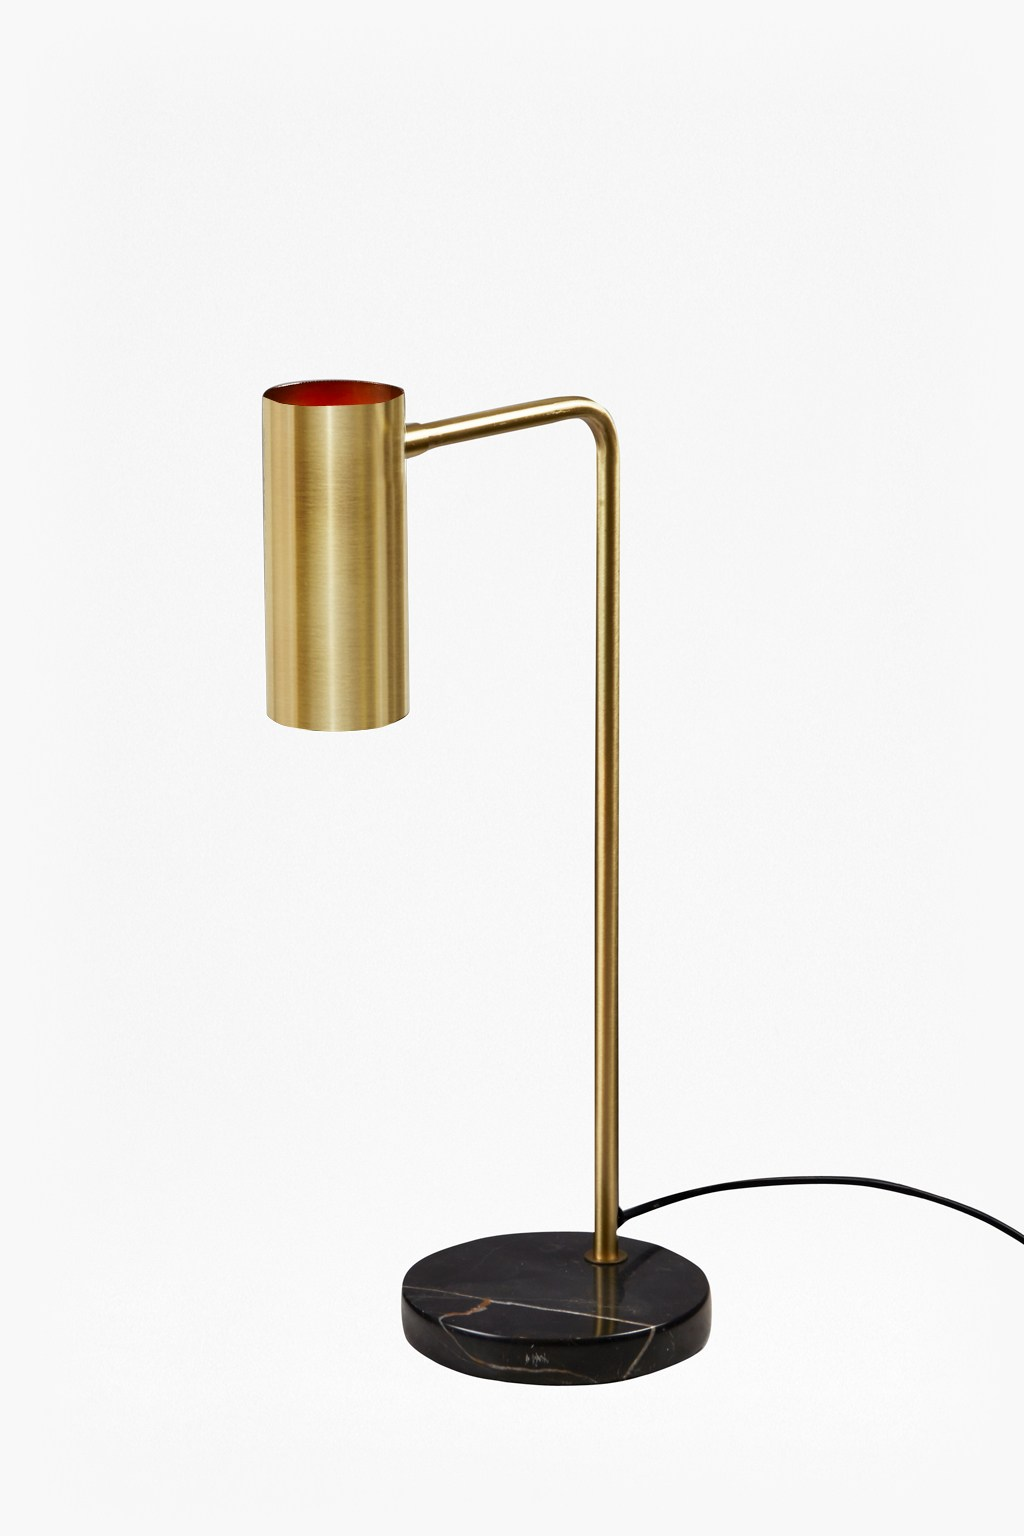 Retro brass table lamp collection french connection retro brass table lamp loading images aloadofball